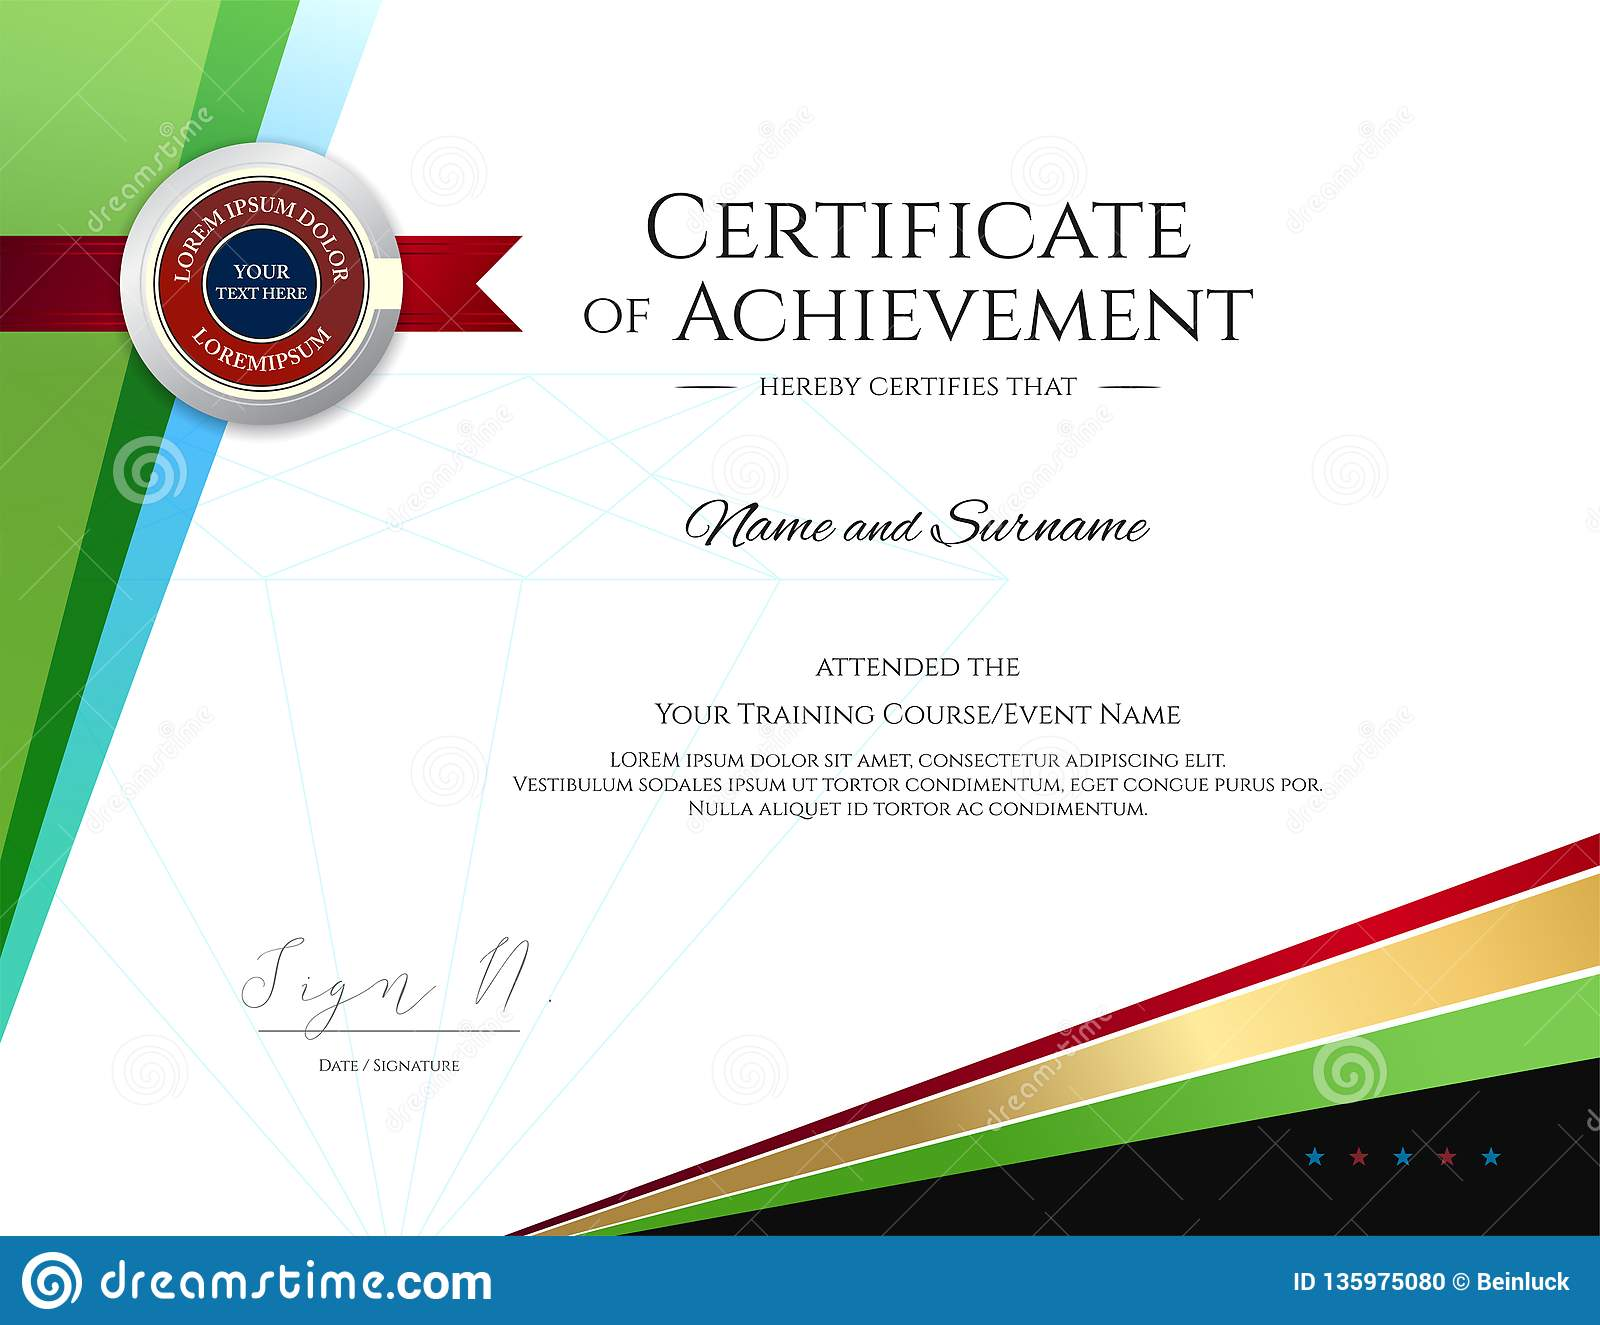 Modern Certificate Template With Elegant Border Frame Diploma Design For Graduation Or Completion Stock Vector Illustration Of Achievement Gift 135975080